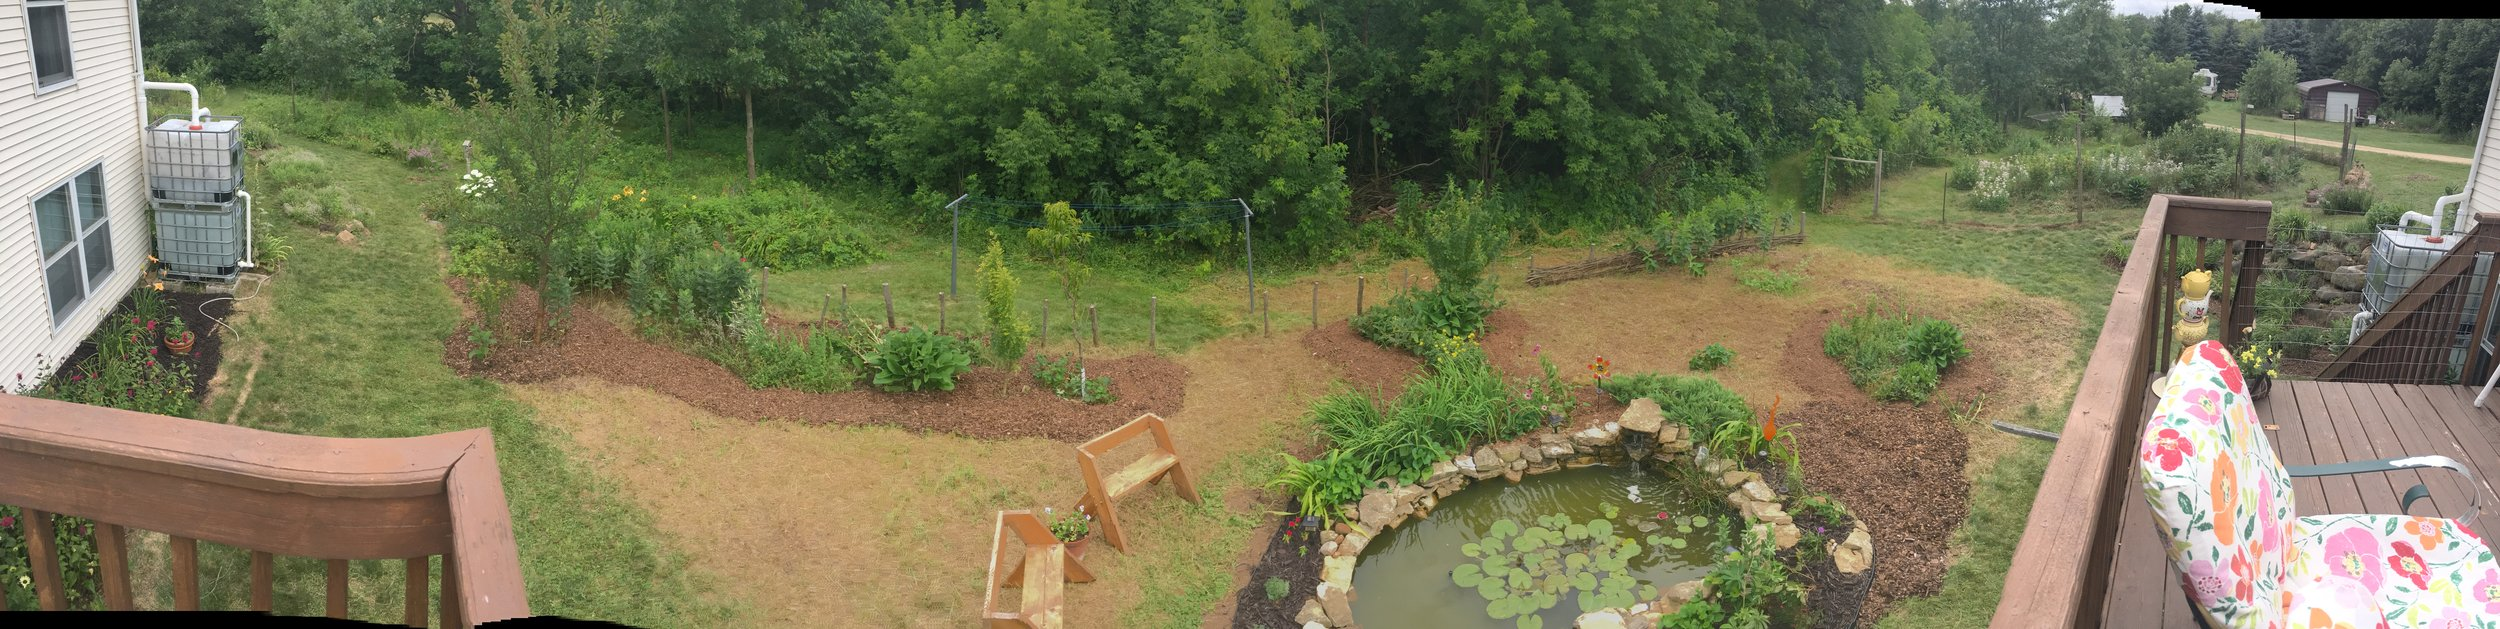 Carlson Homestead back yard with pond built during a workshop (led by Bryce Ruddock)at the 2014 WPC .